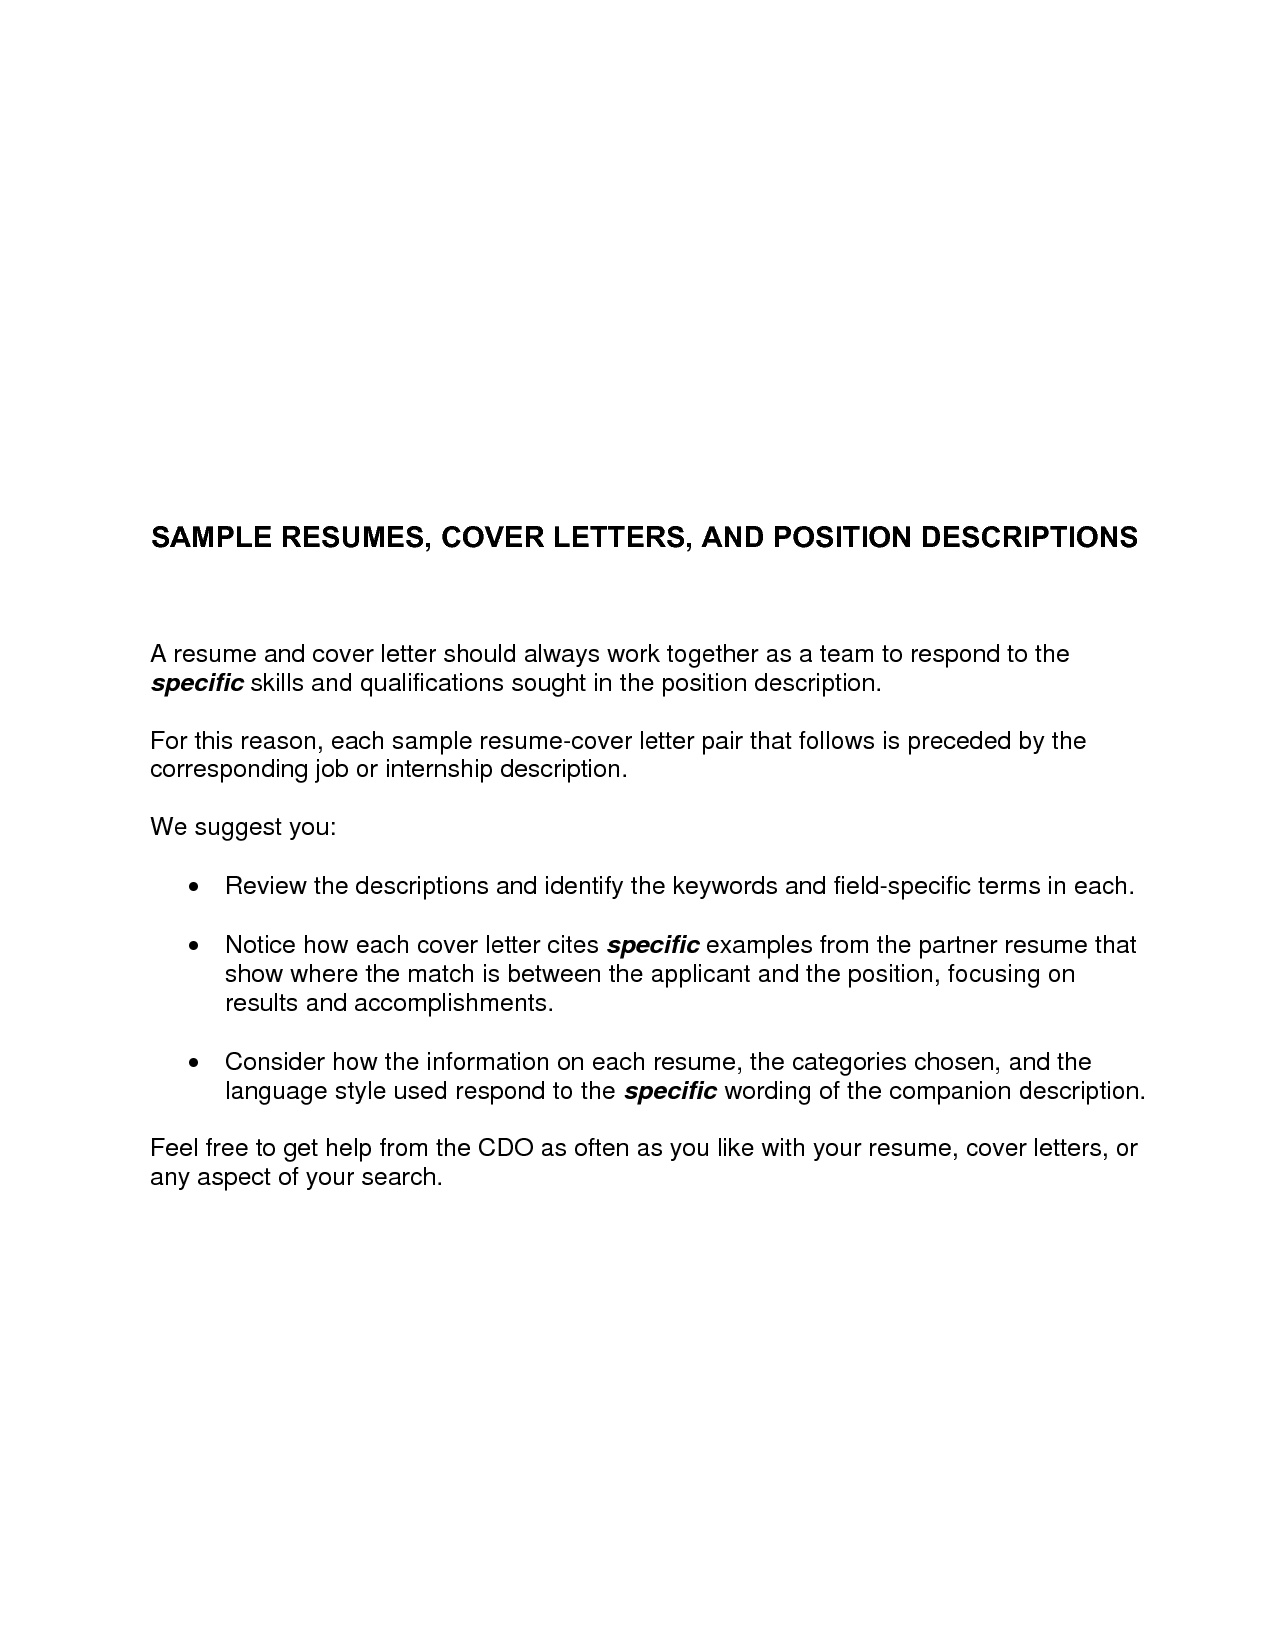 cover letter for cv sample template applying a job cover letter for cv sample